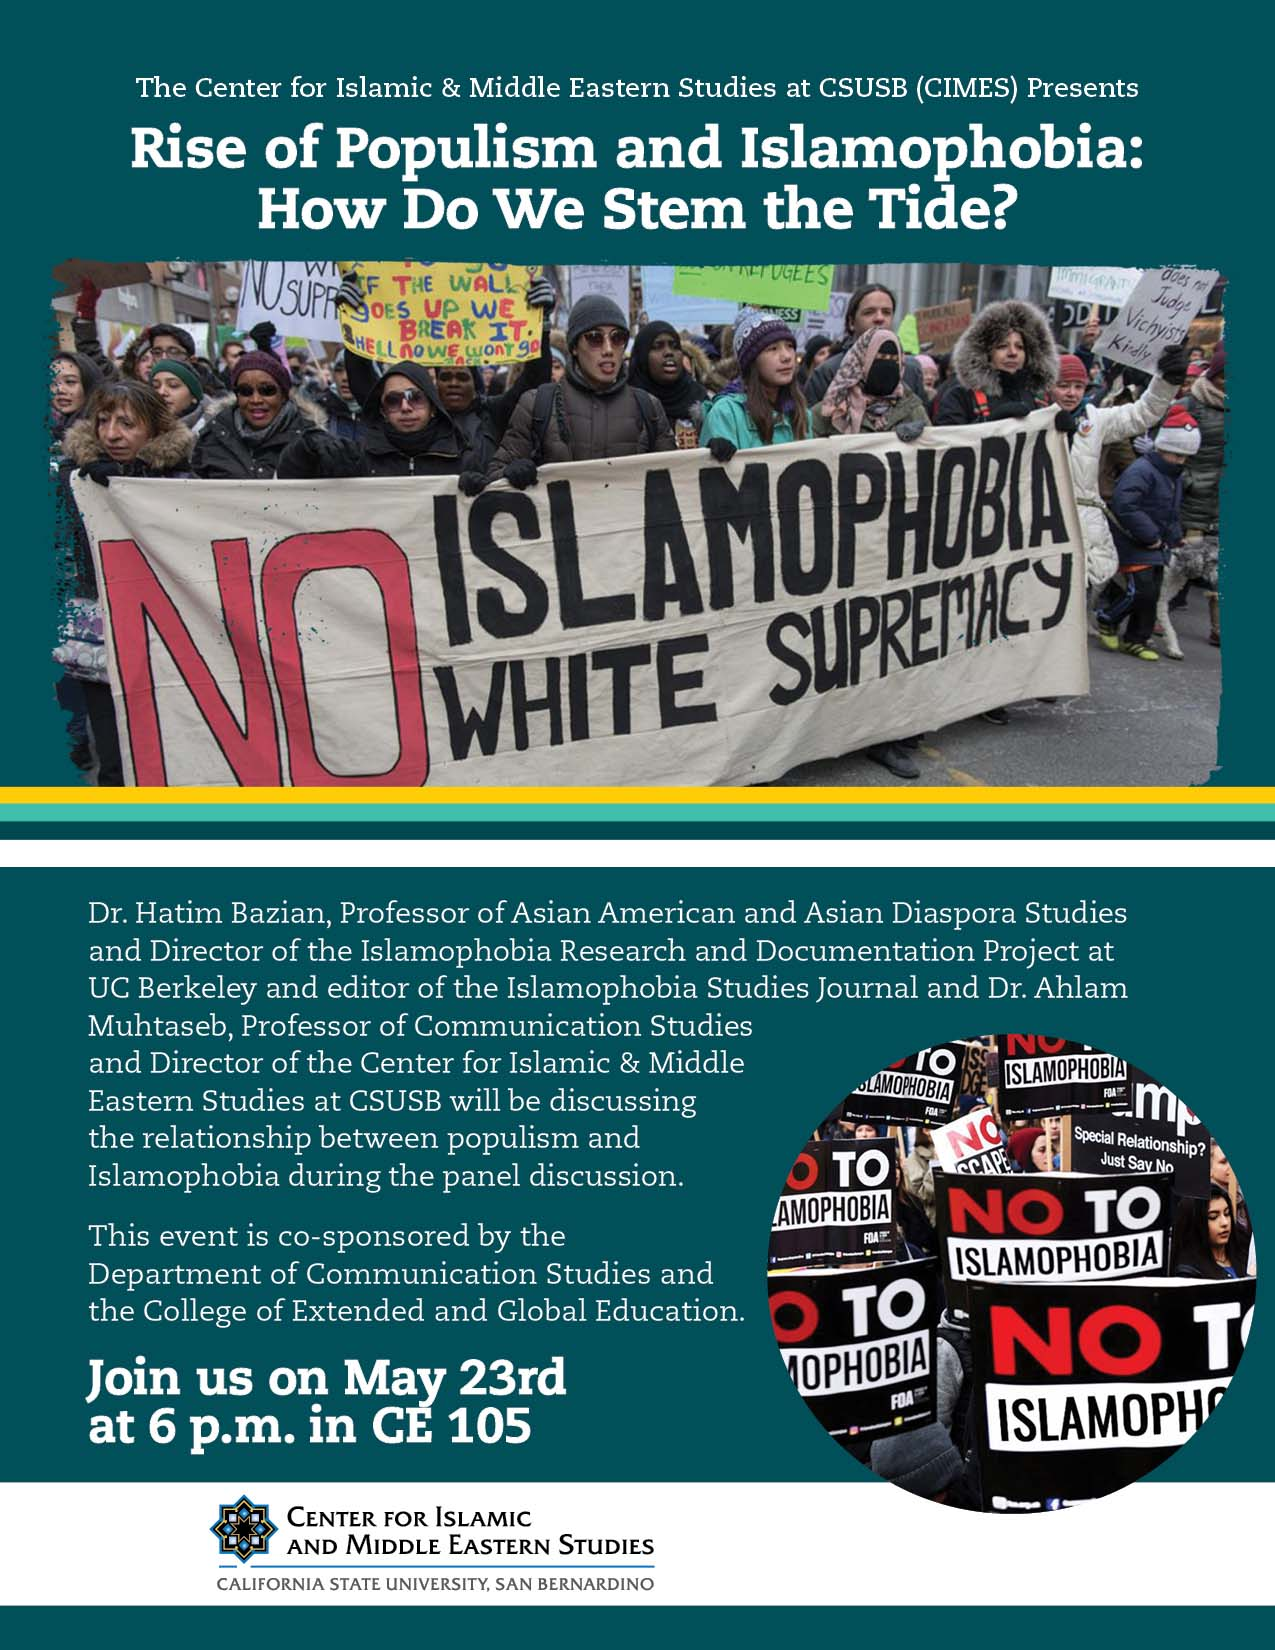 "The rise of populism and Islamophobia will be the topic of discussion when the Center for Islamic and Middle Eastern Studies at Cal State San Bernardino hosts a panel discussion, ""Rise of Populism and Islamophobia: How Can We Stem the Tide?"" on Thursday,"